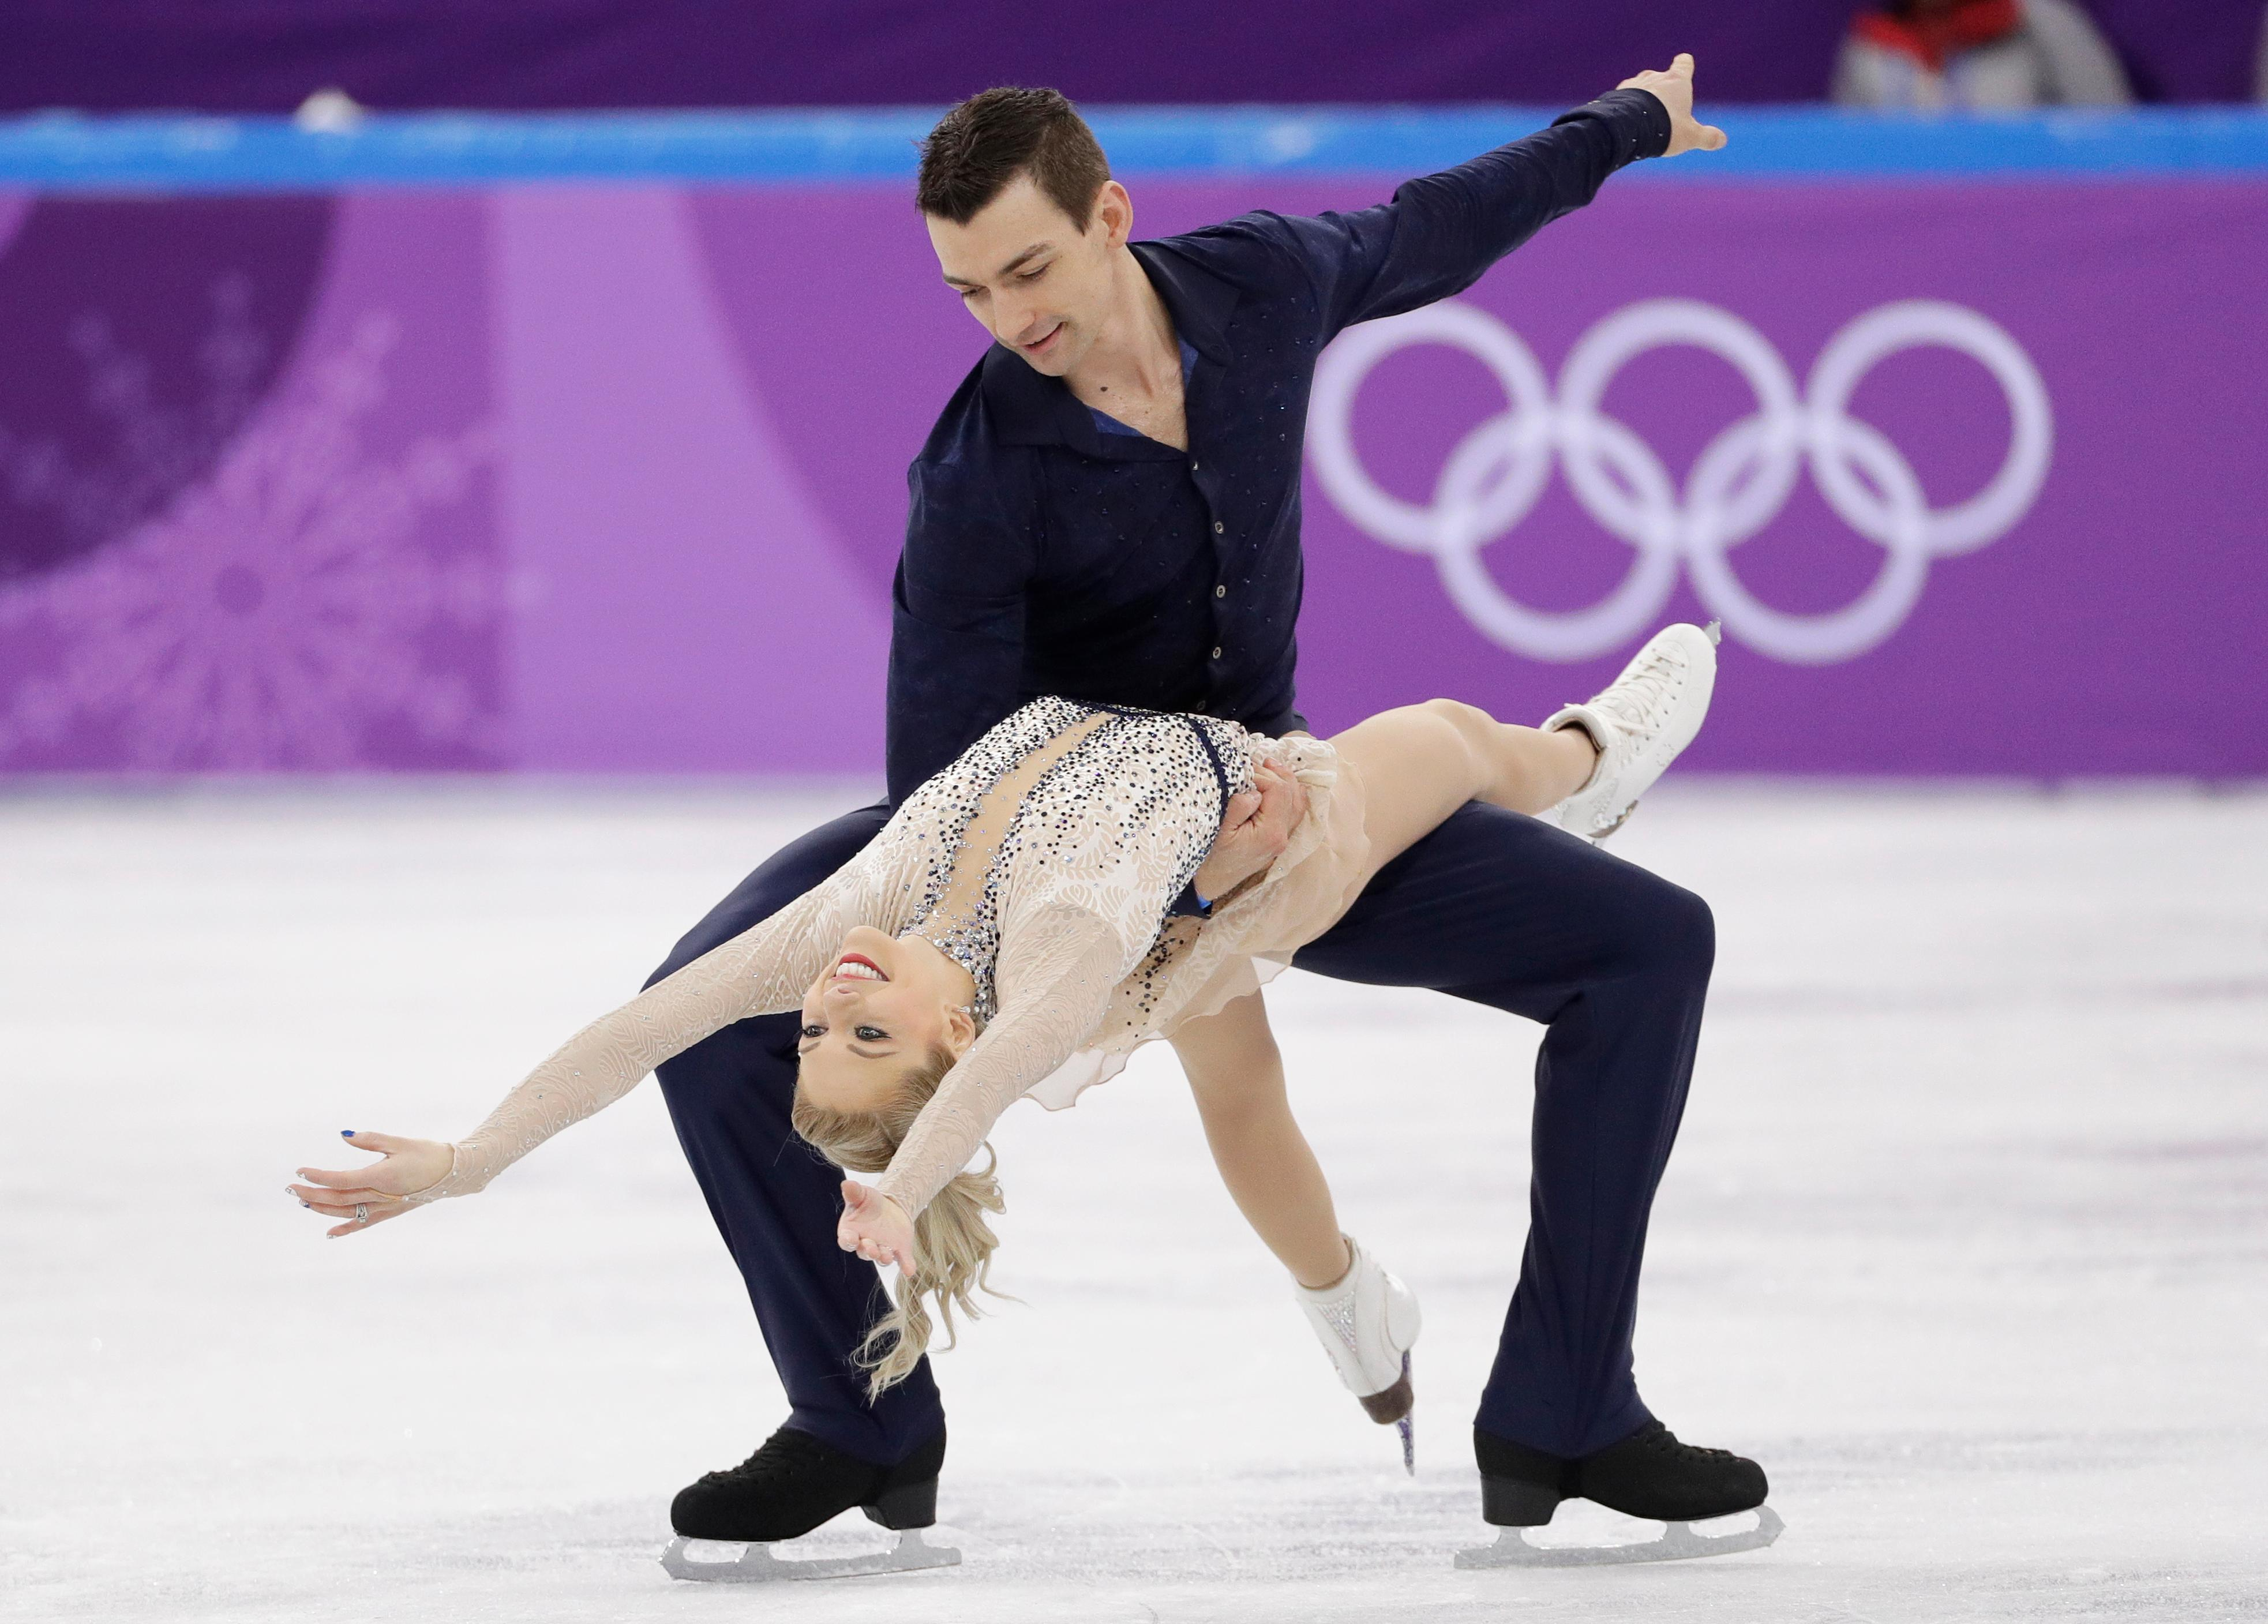 FILE - In this Feb. 14, 2018, file photo, Alexa Scimeca Knierim and Chris Knierim perform in the pairs figure skating short program in the Gangneung Ice Arena at the 2018 Winter Olympics in Gangneung, South Korea. For the season following an Olympics, Skate America certainly is packed with top U.S. competitors. The six-event Grand Prix series begins in Everett, Washington on Friday, Oct. 19. (AP Photo/David J. Phillip, File)